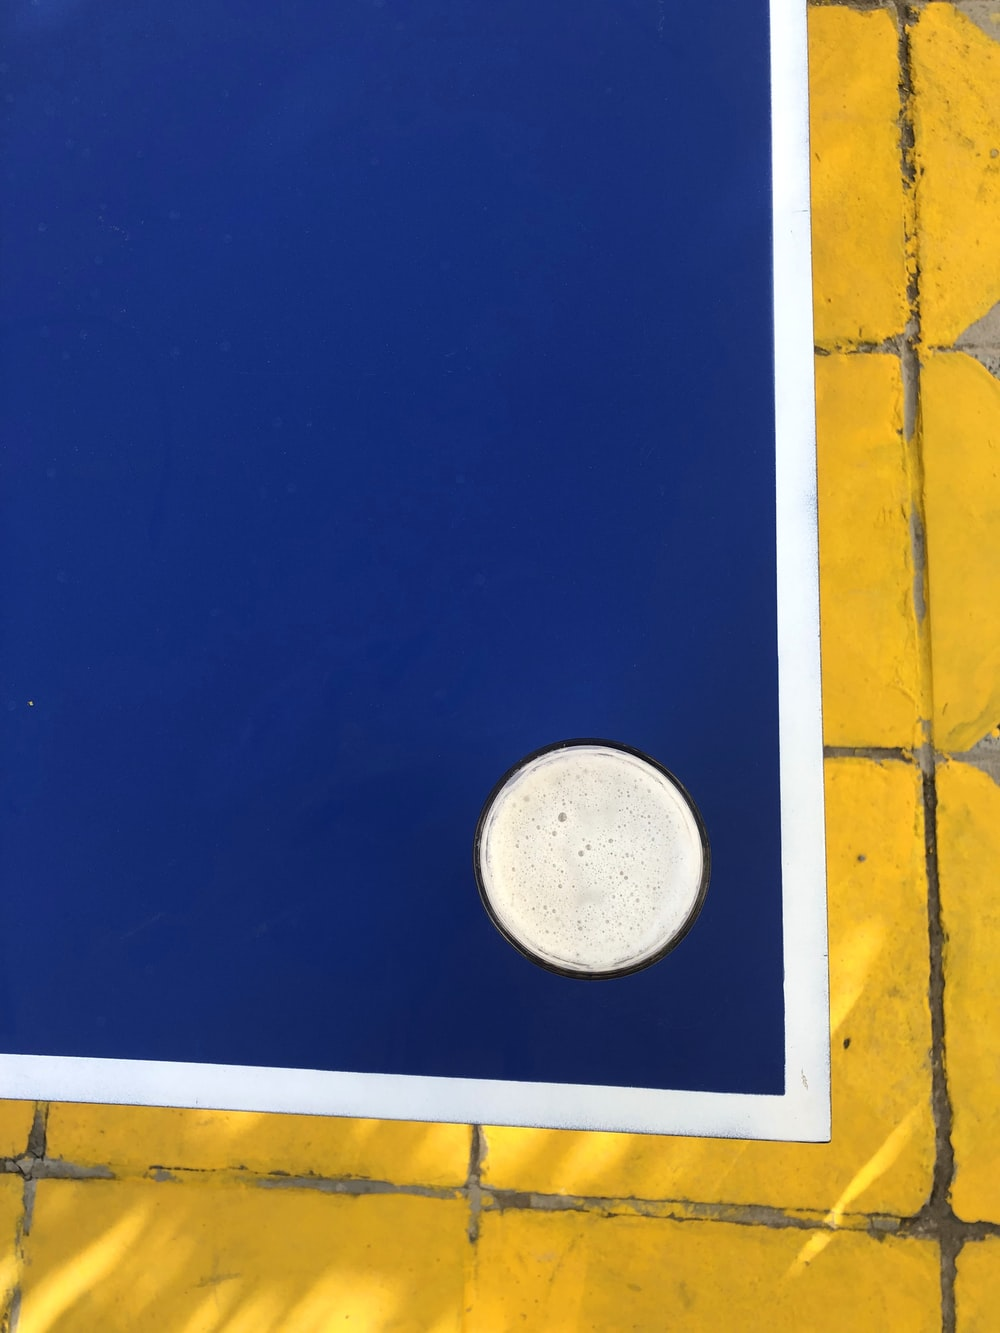 blue and white board with hole